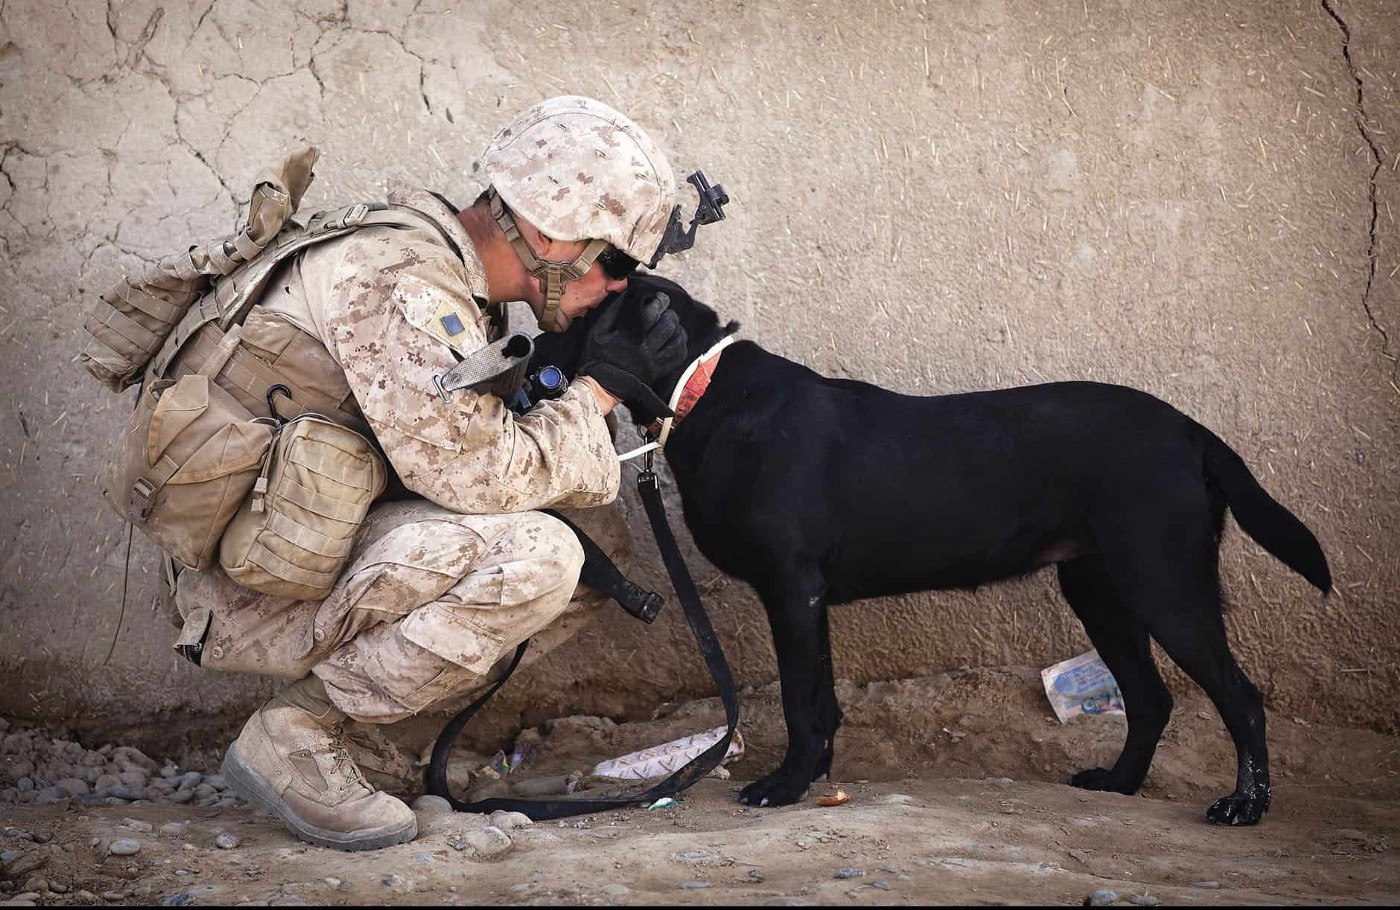 Service Dogs and Emotional Support Animals - Everything You Need To Know